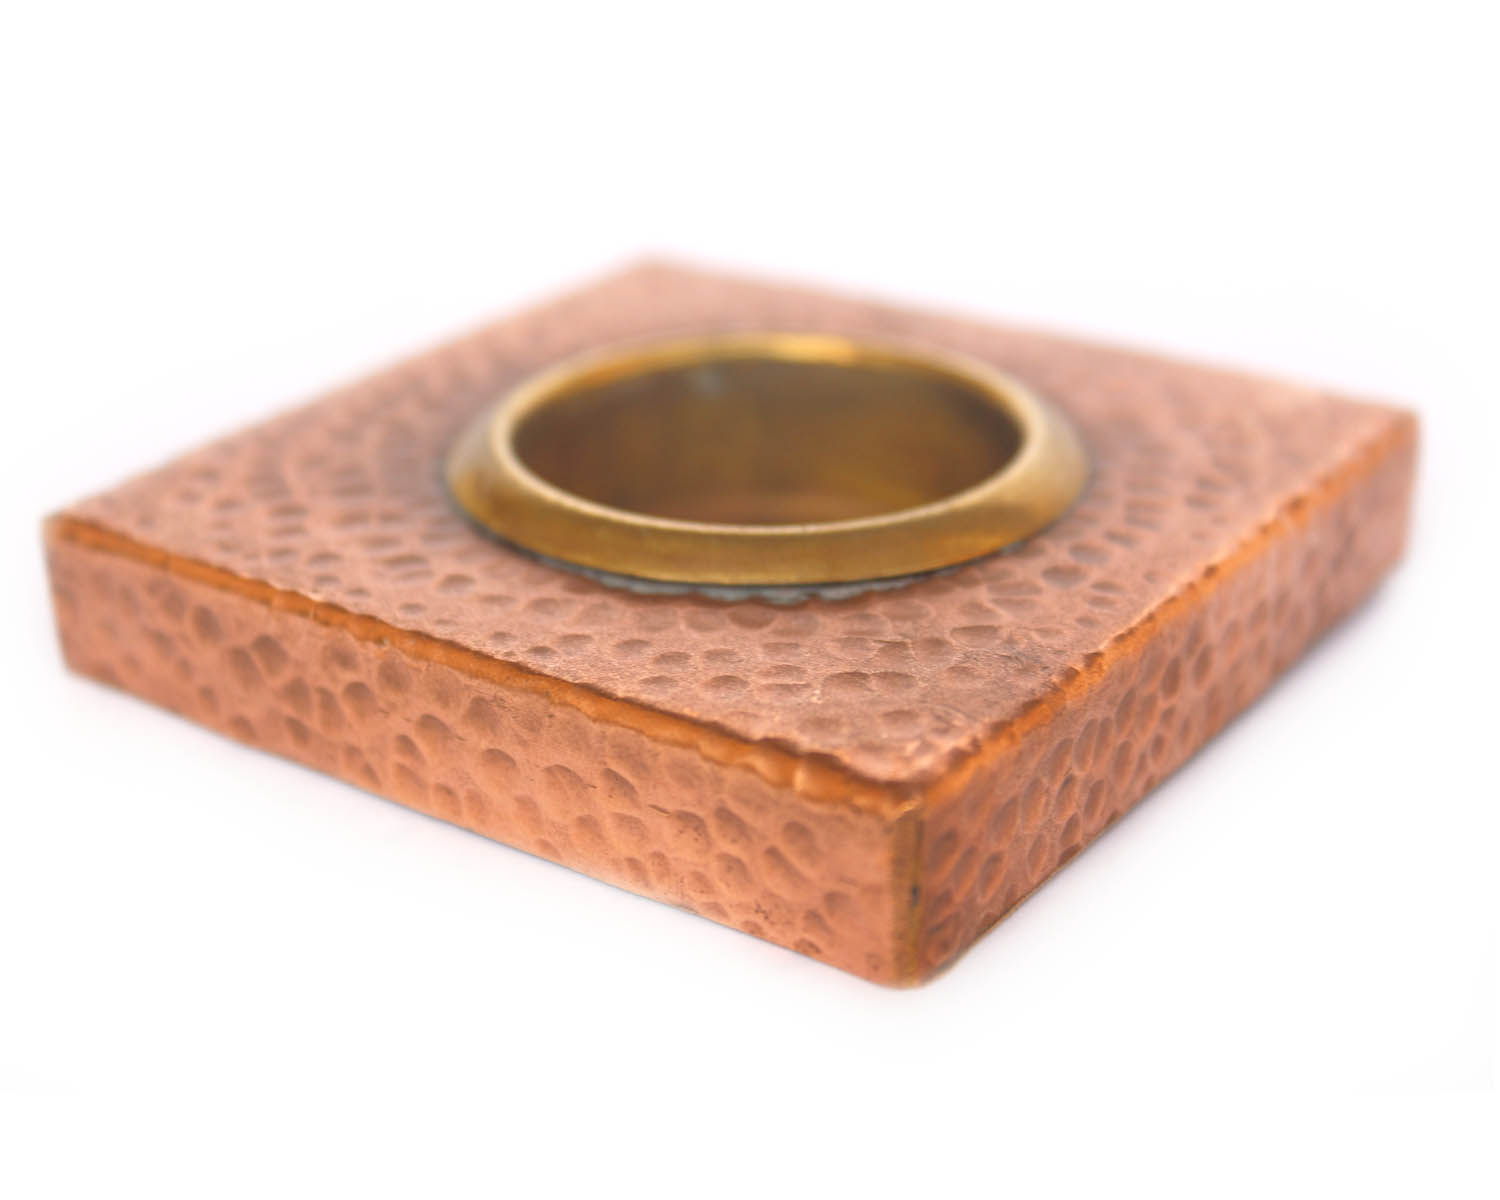 De Kulture Works Hand Made Copper and Brass Votive Holder (3x3x0.5 Inches, Brown)